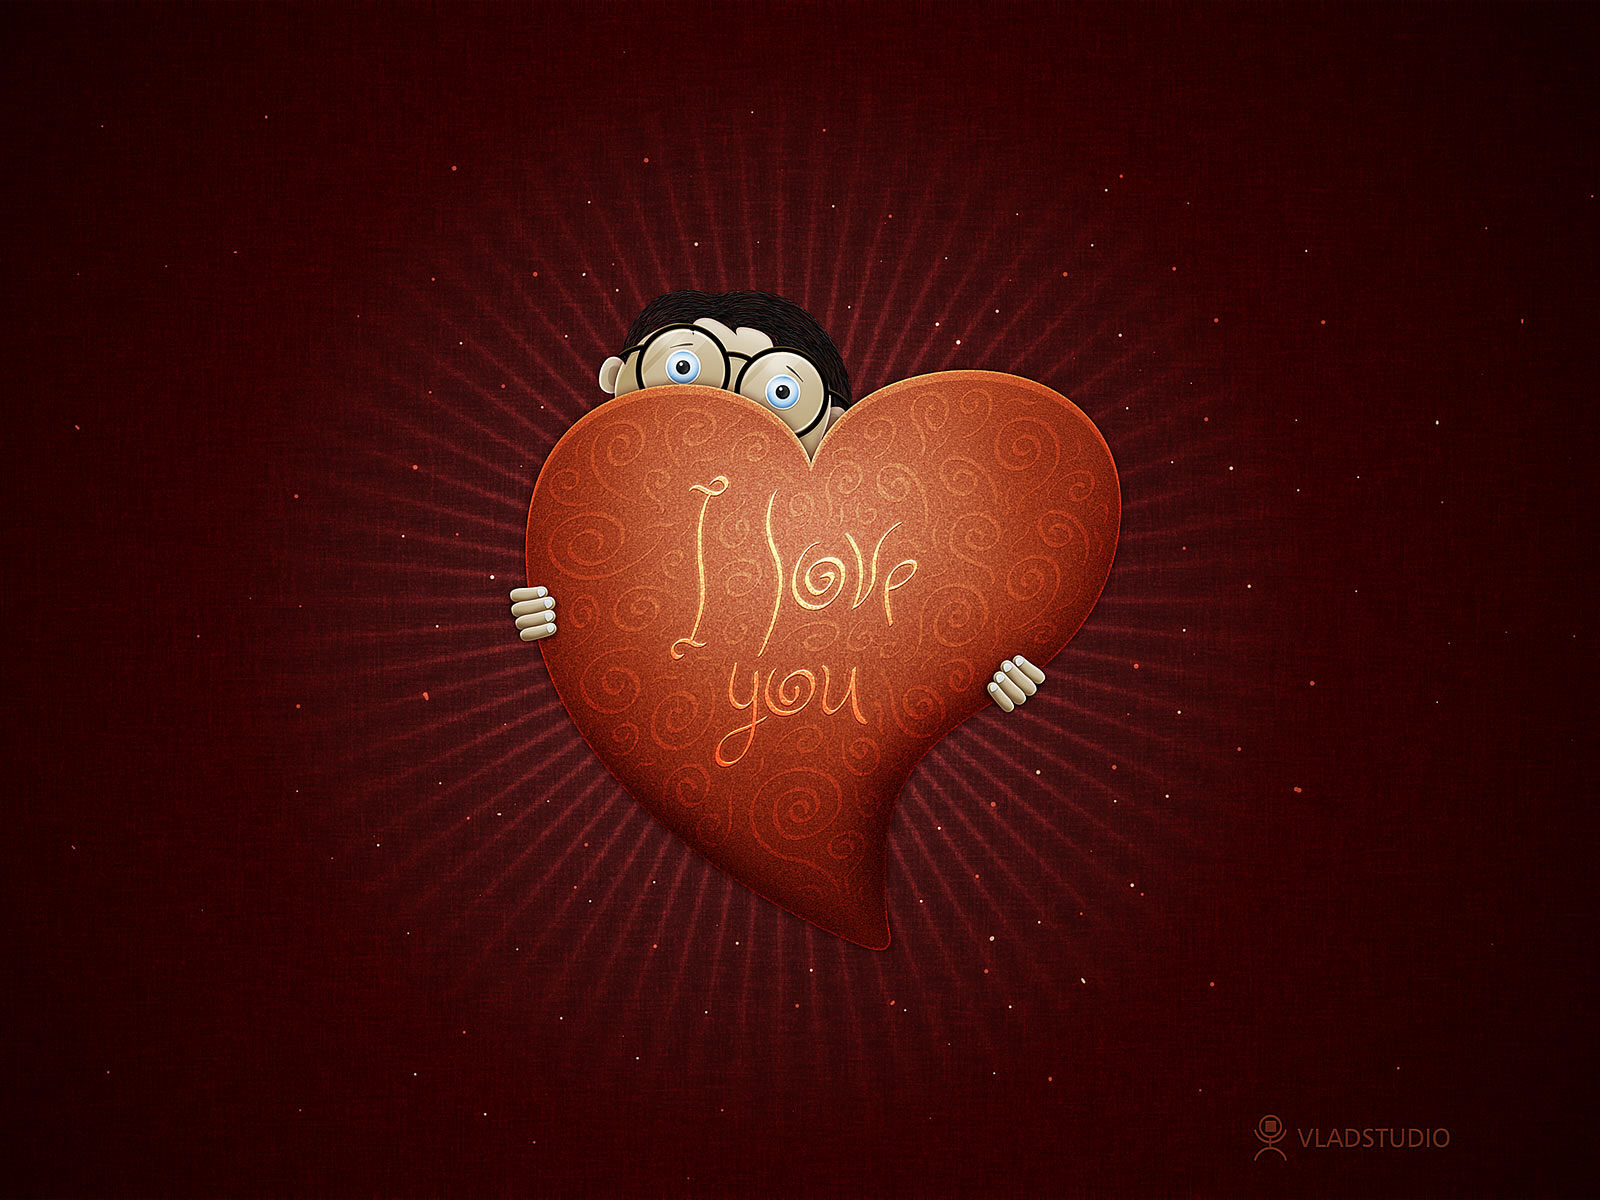 i love you wallpaper hd,heart,red,love,valentine's day,organ